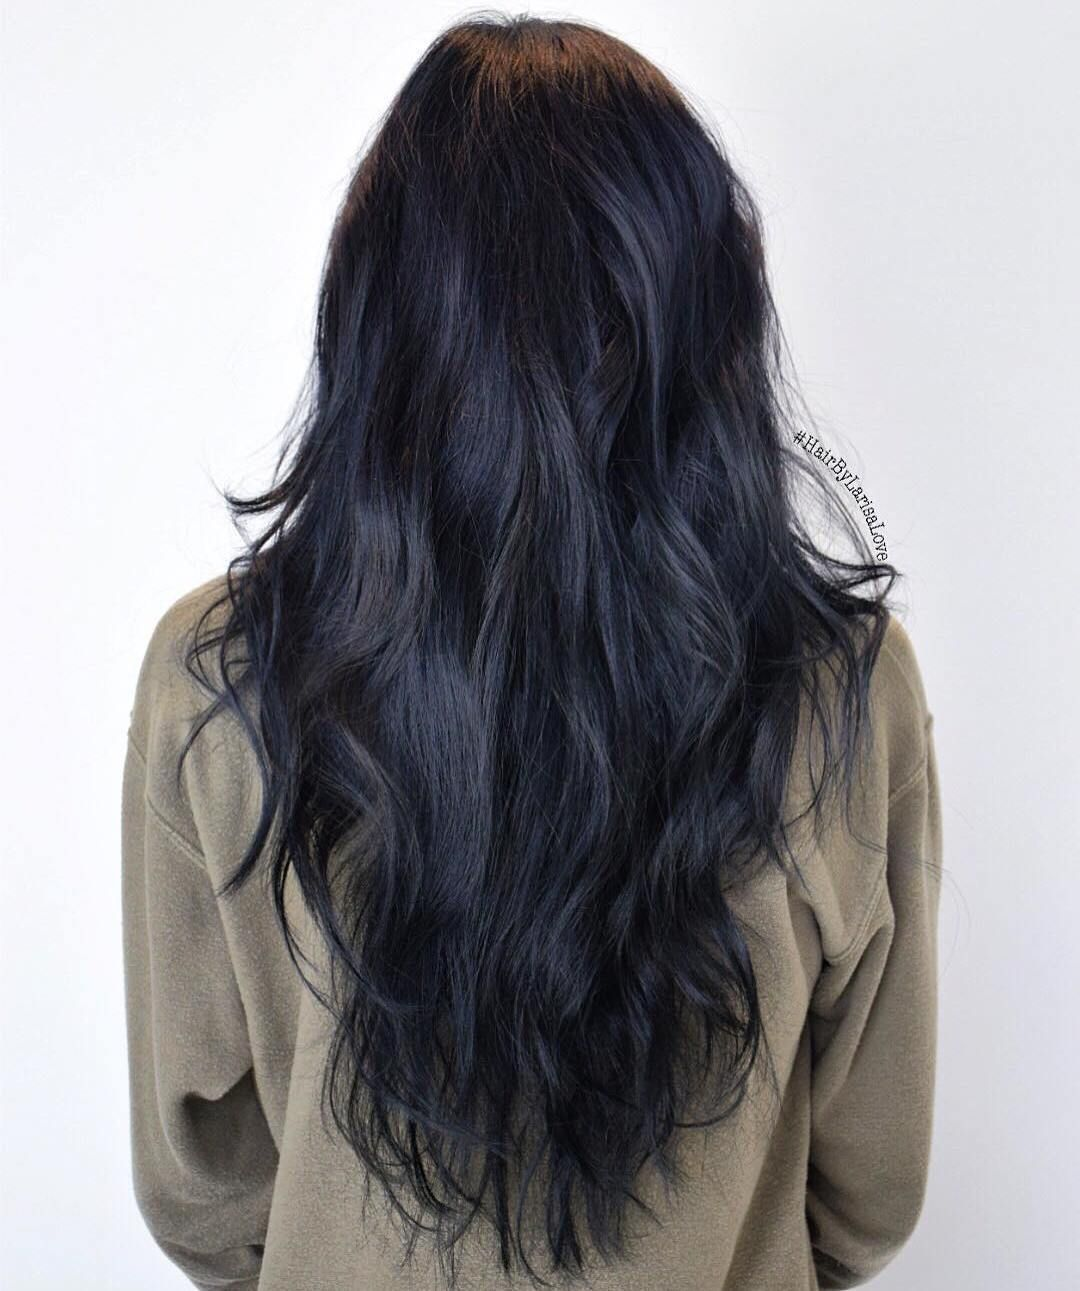 Long Layered Black Hairstyle Blue Black Hair Black Hair Dye Hair Color For Black Hair